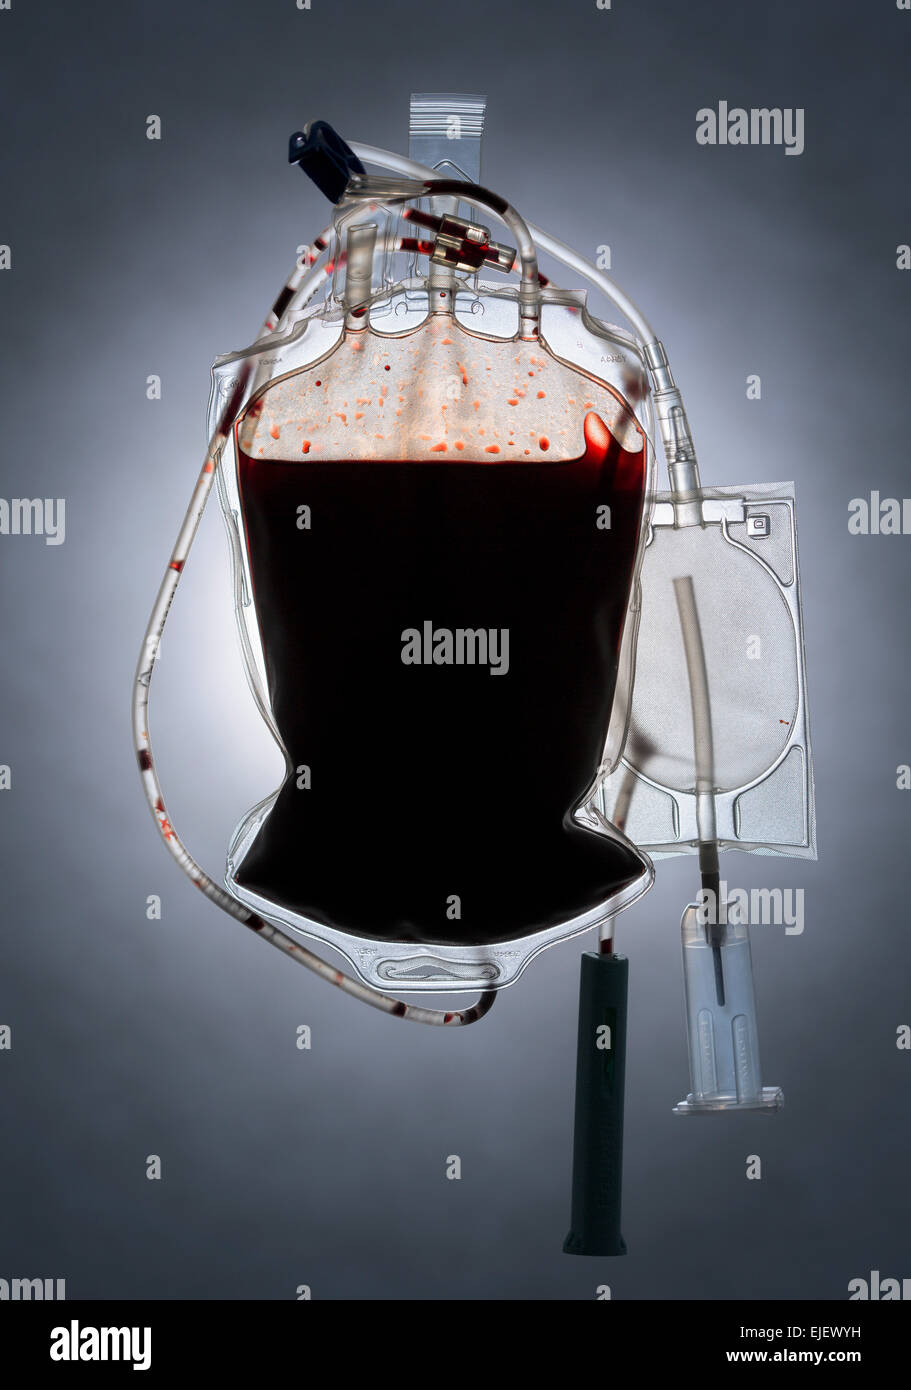 A full bag of dark rich blood with tubes wrapped around it. - Stock Image